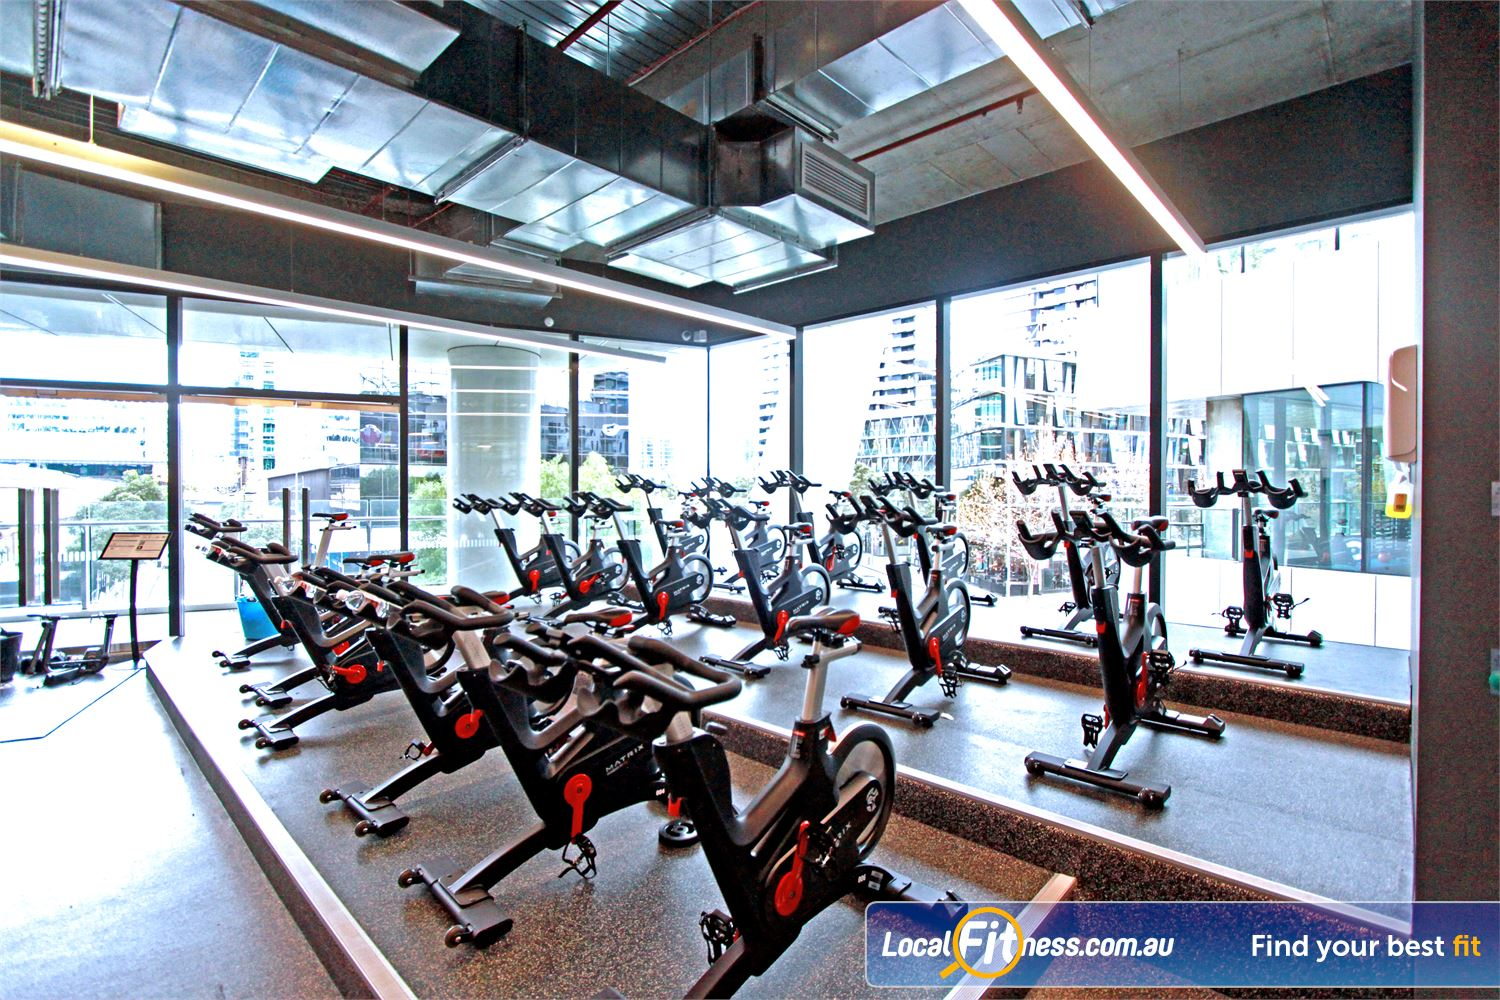 Goodlife Health Clubs Near Port Melbourne Experience one of the best high tech cycle studios in Docklands.